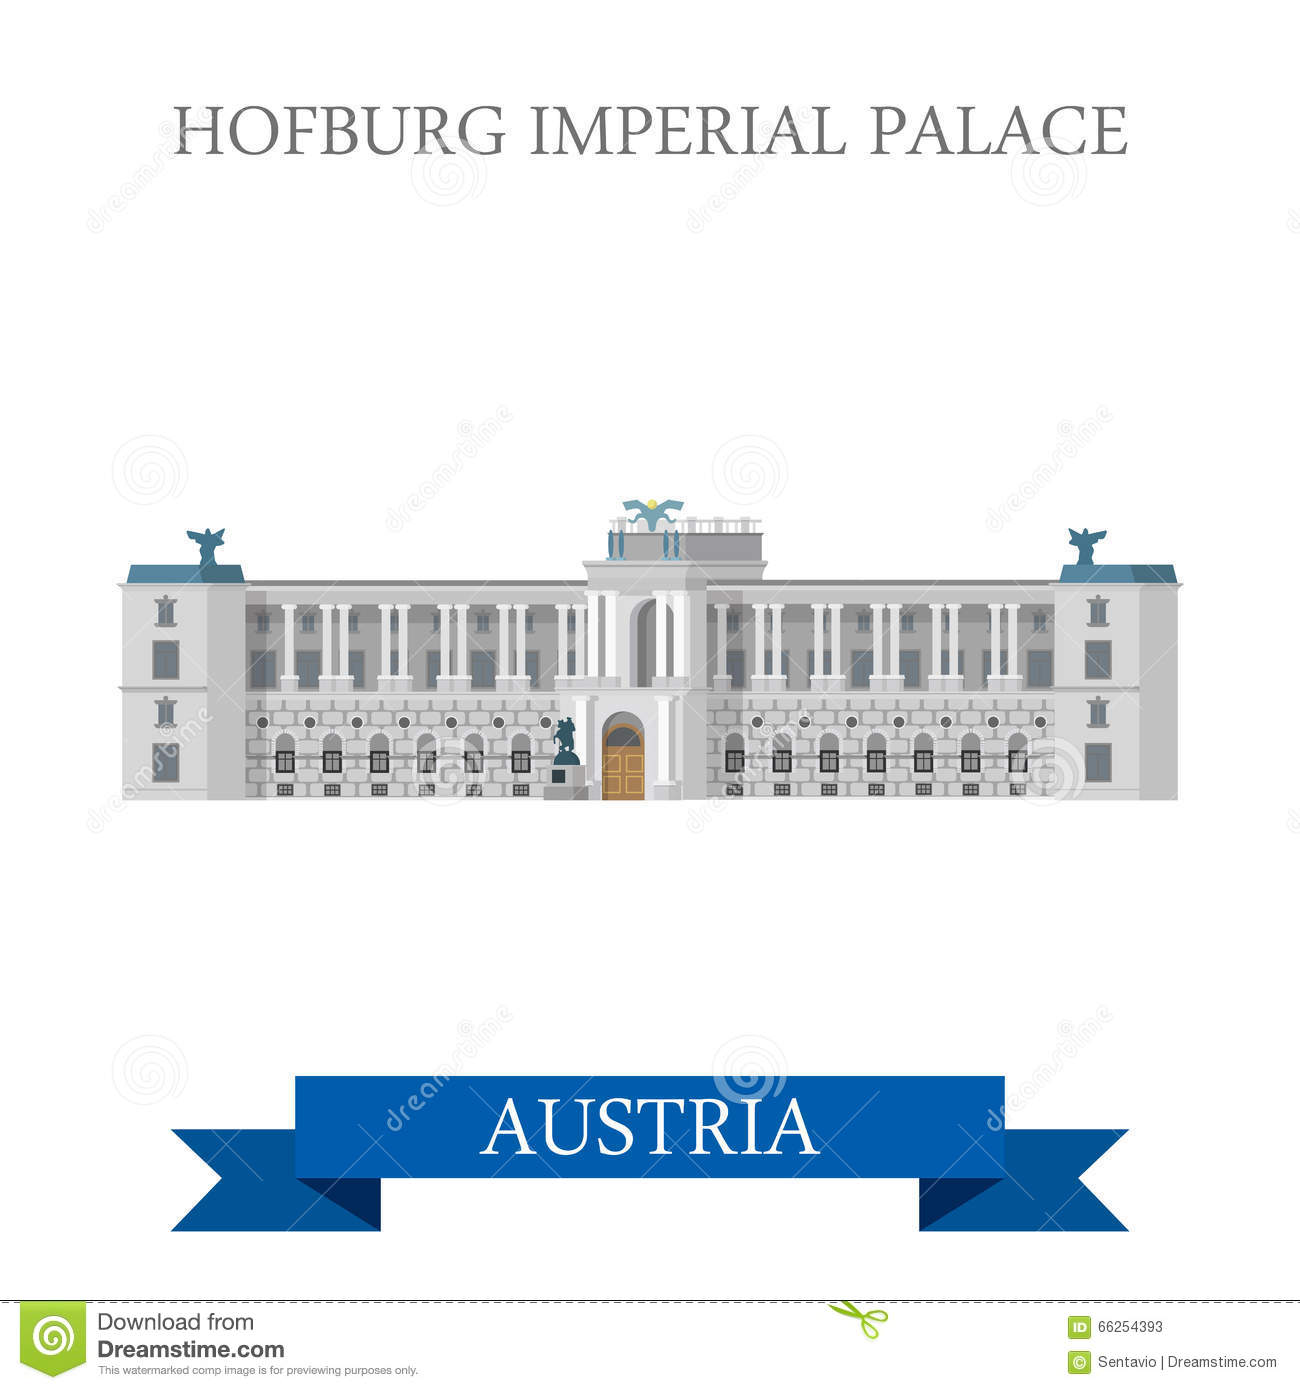 Hofburg Imperial Palace Vienna Austria Flat Vector Attraction.